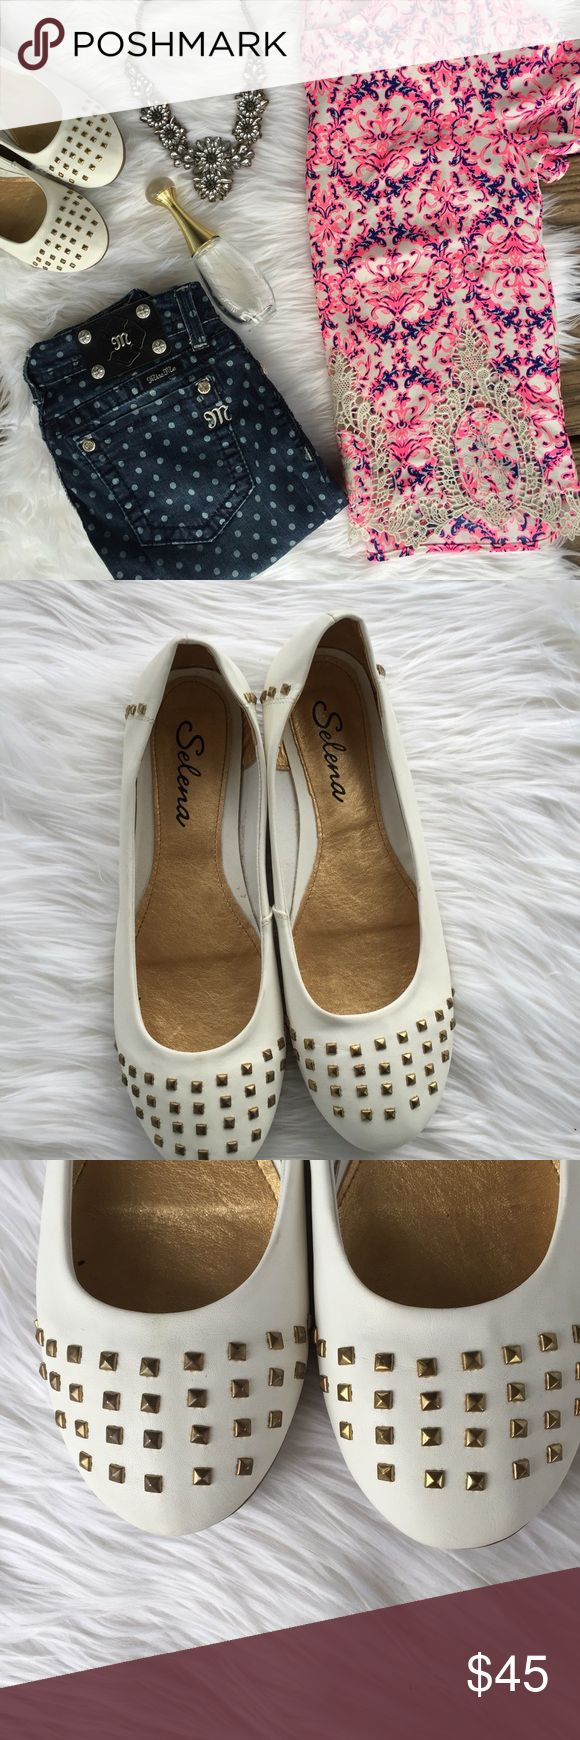 White Leather Gold Studded Ballet Flats SZ 9 Gorgeous White Leather ballet flat slip on shoe. Square gold stud detail on the toe. Made in Brazil. Size 9. Europe size 9. New without box. Brand is Selena. Selena Shoes Flats & Loafers